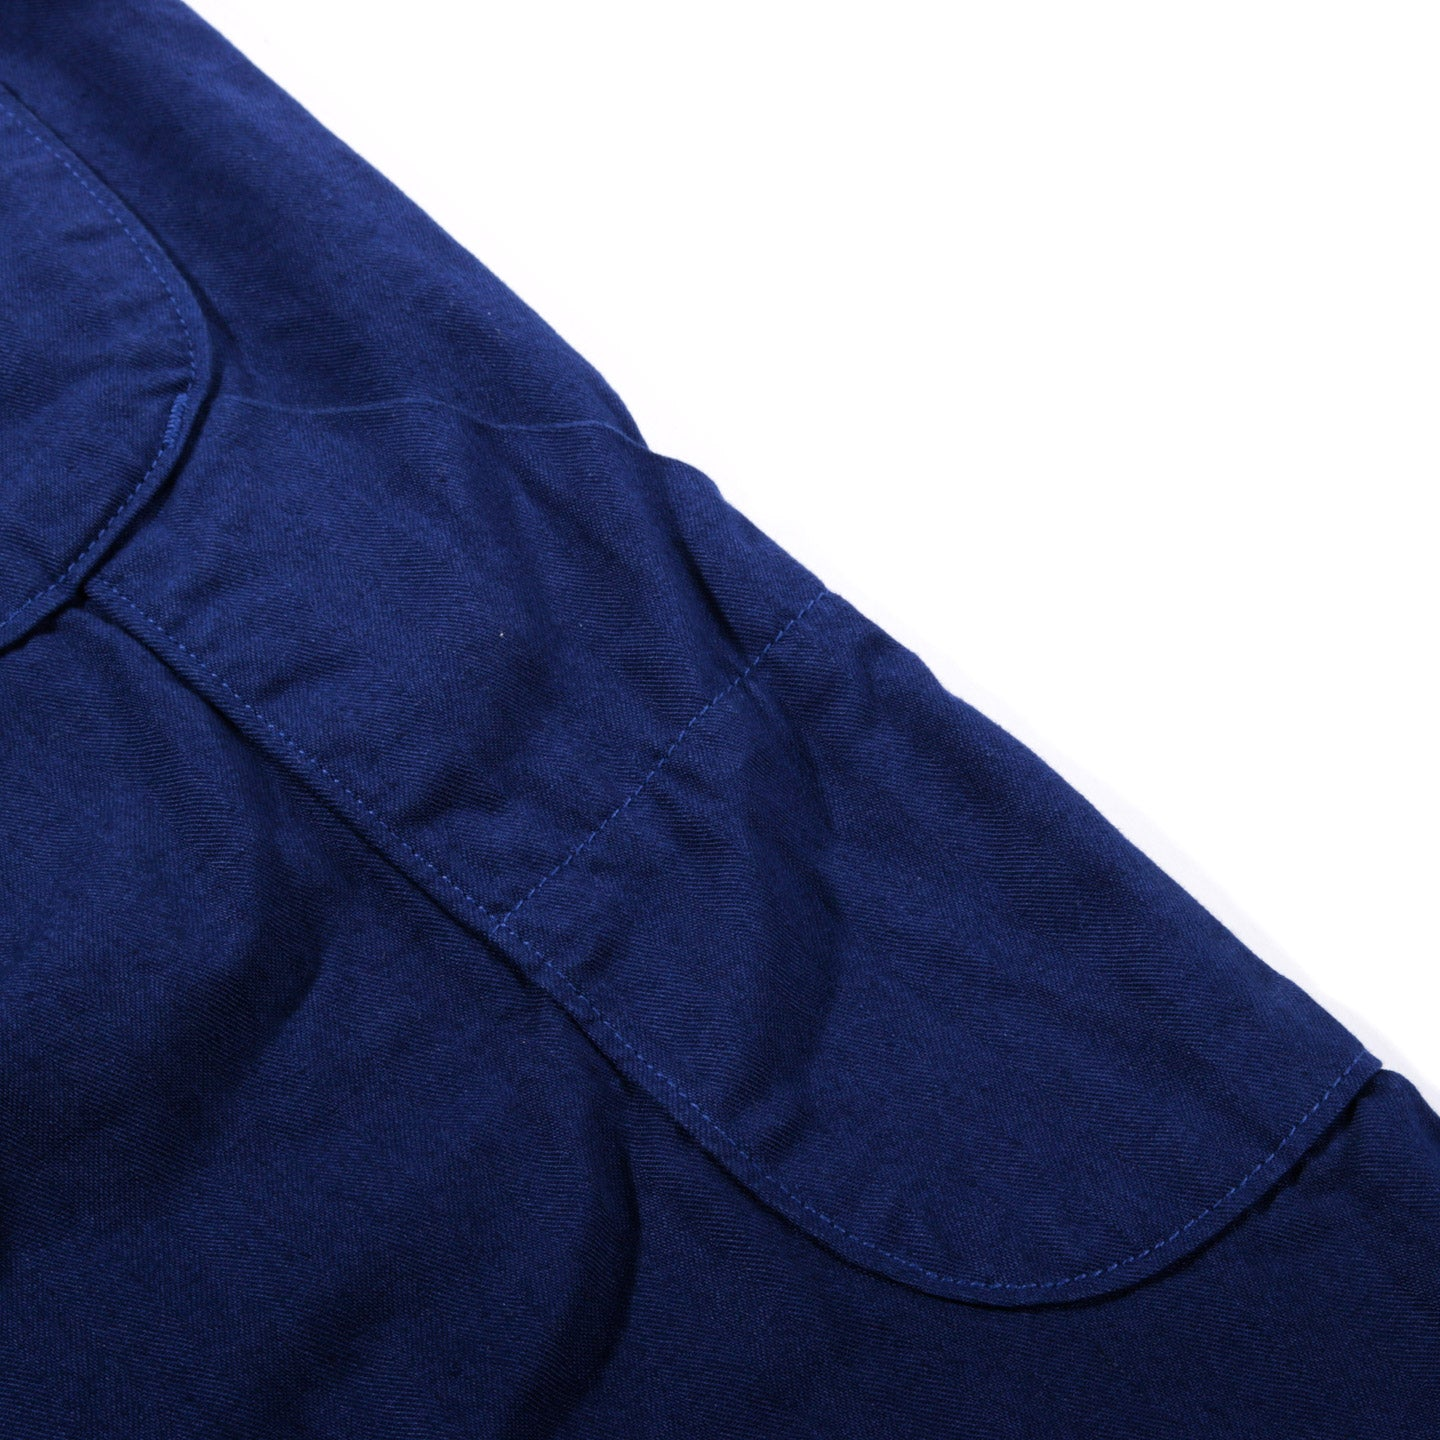 ORSLOW FRENCH WORK PANTS BLUE